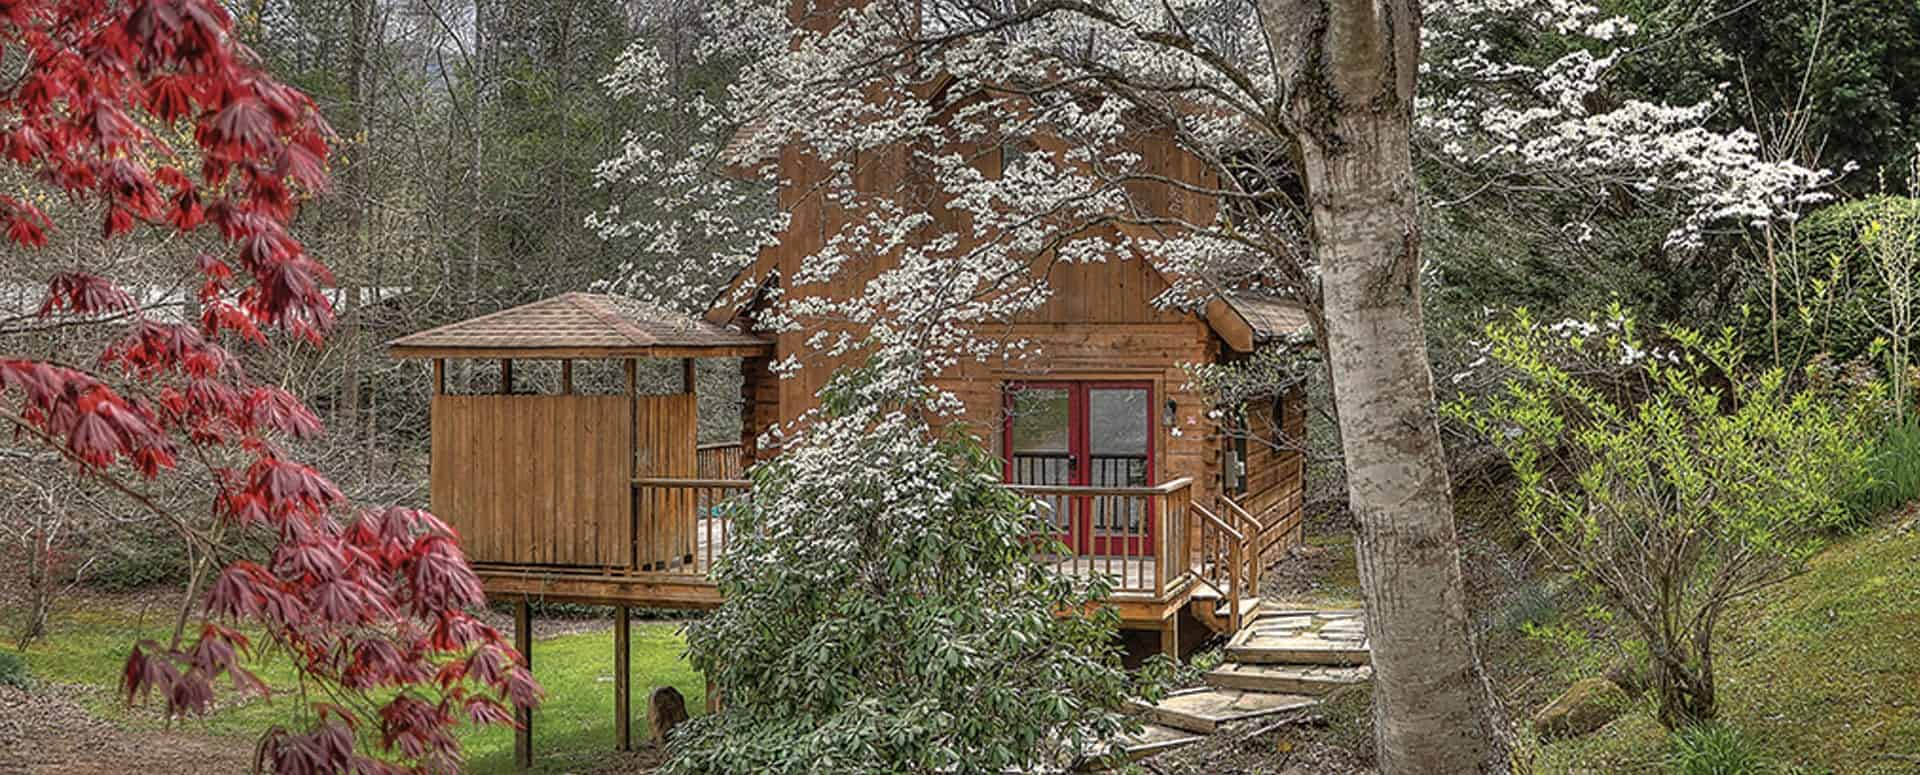 tn vacation cabins in gatlinburg georgia mountains rentals cabin ga cheap near illinois galena chalet